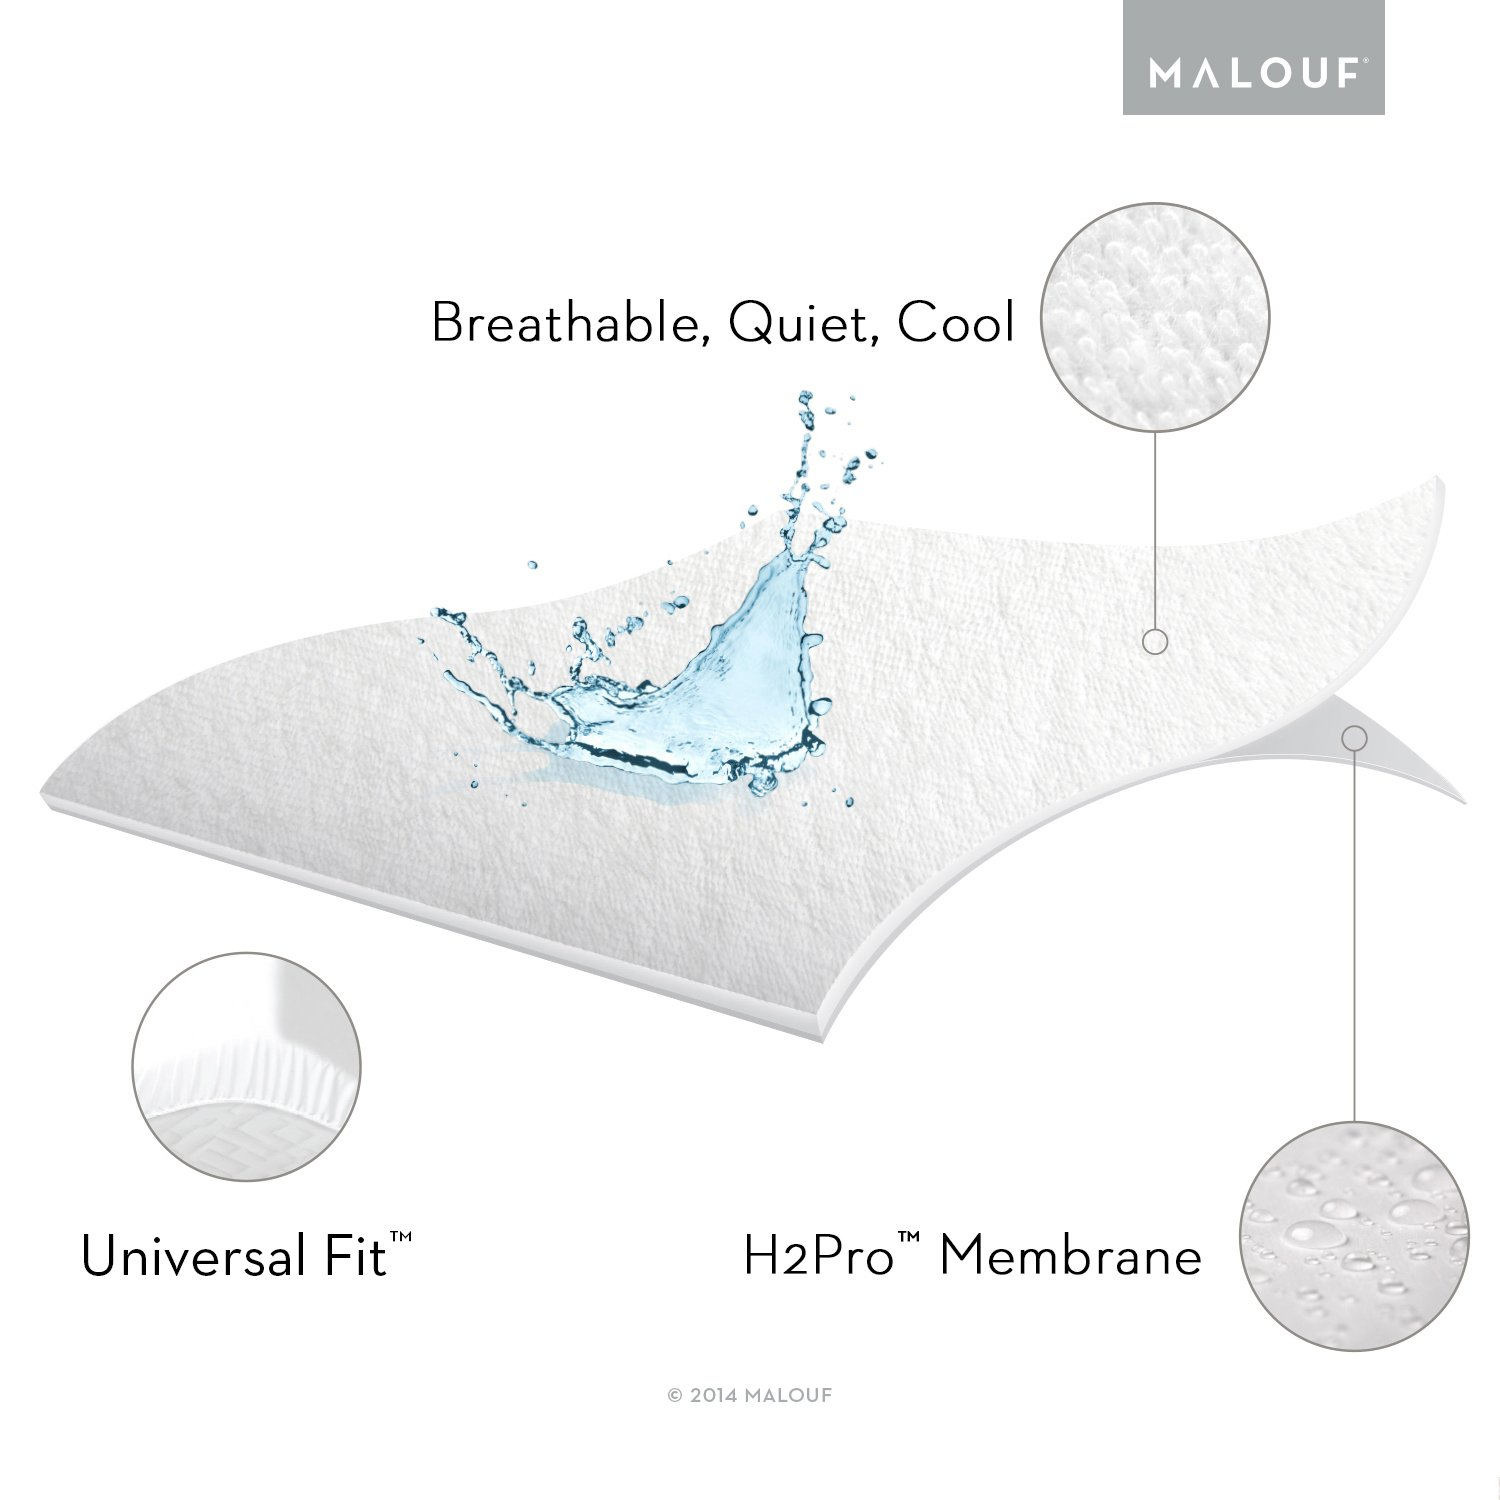 Amazon.com: Sleep Tite Hypoallergenic 100% Waterproof Mattress Protector- 15-Year Warranty - Cal King: Home & Kitchen